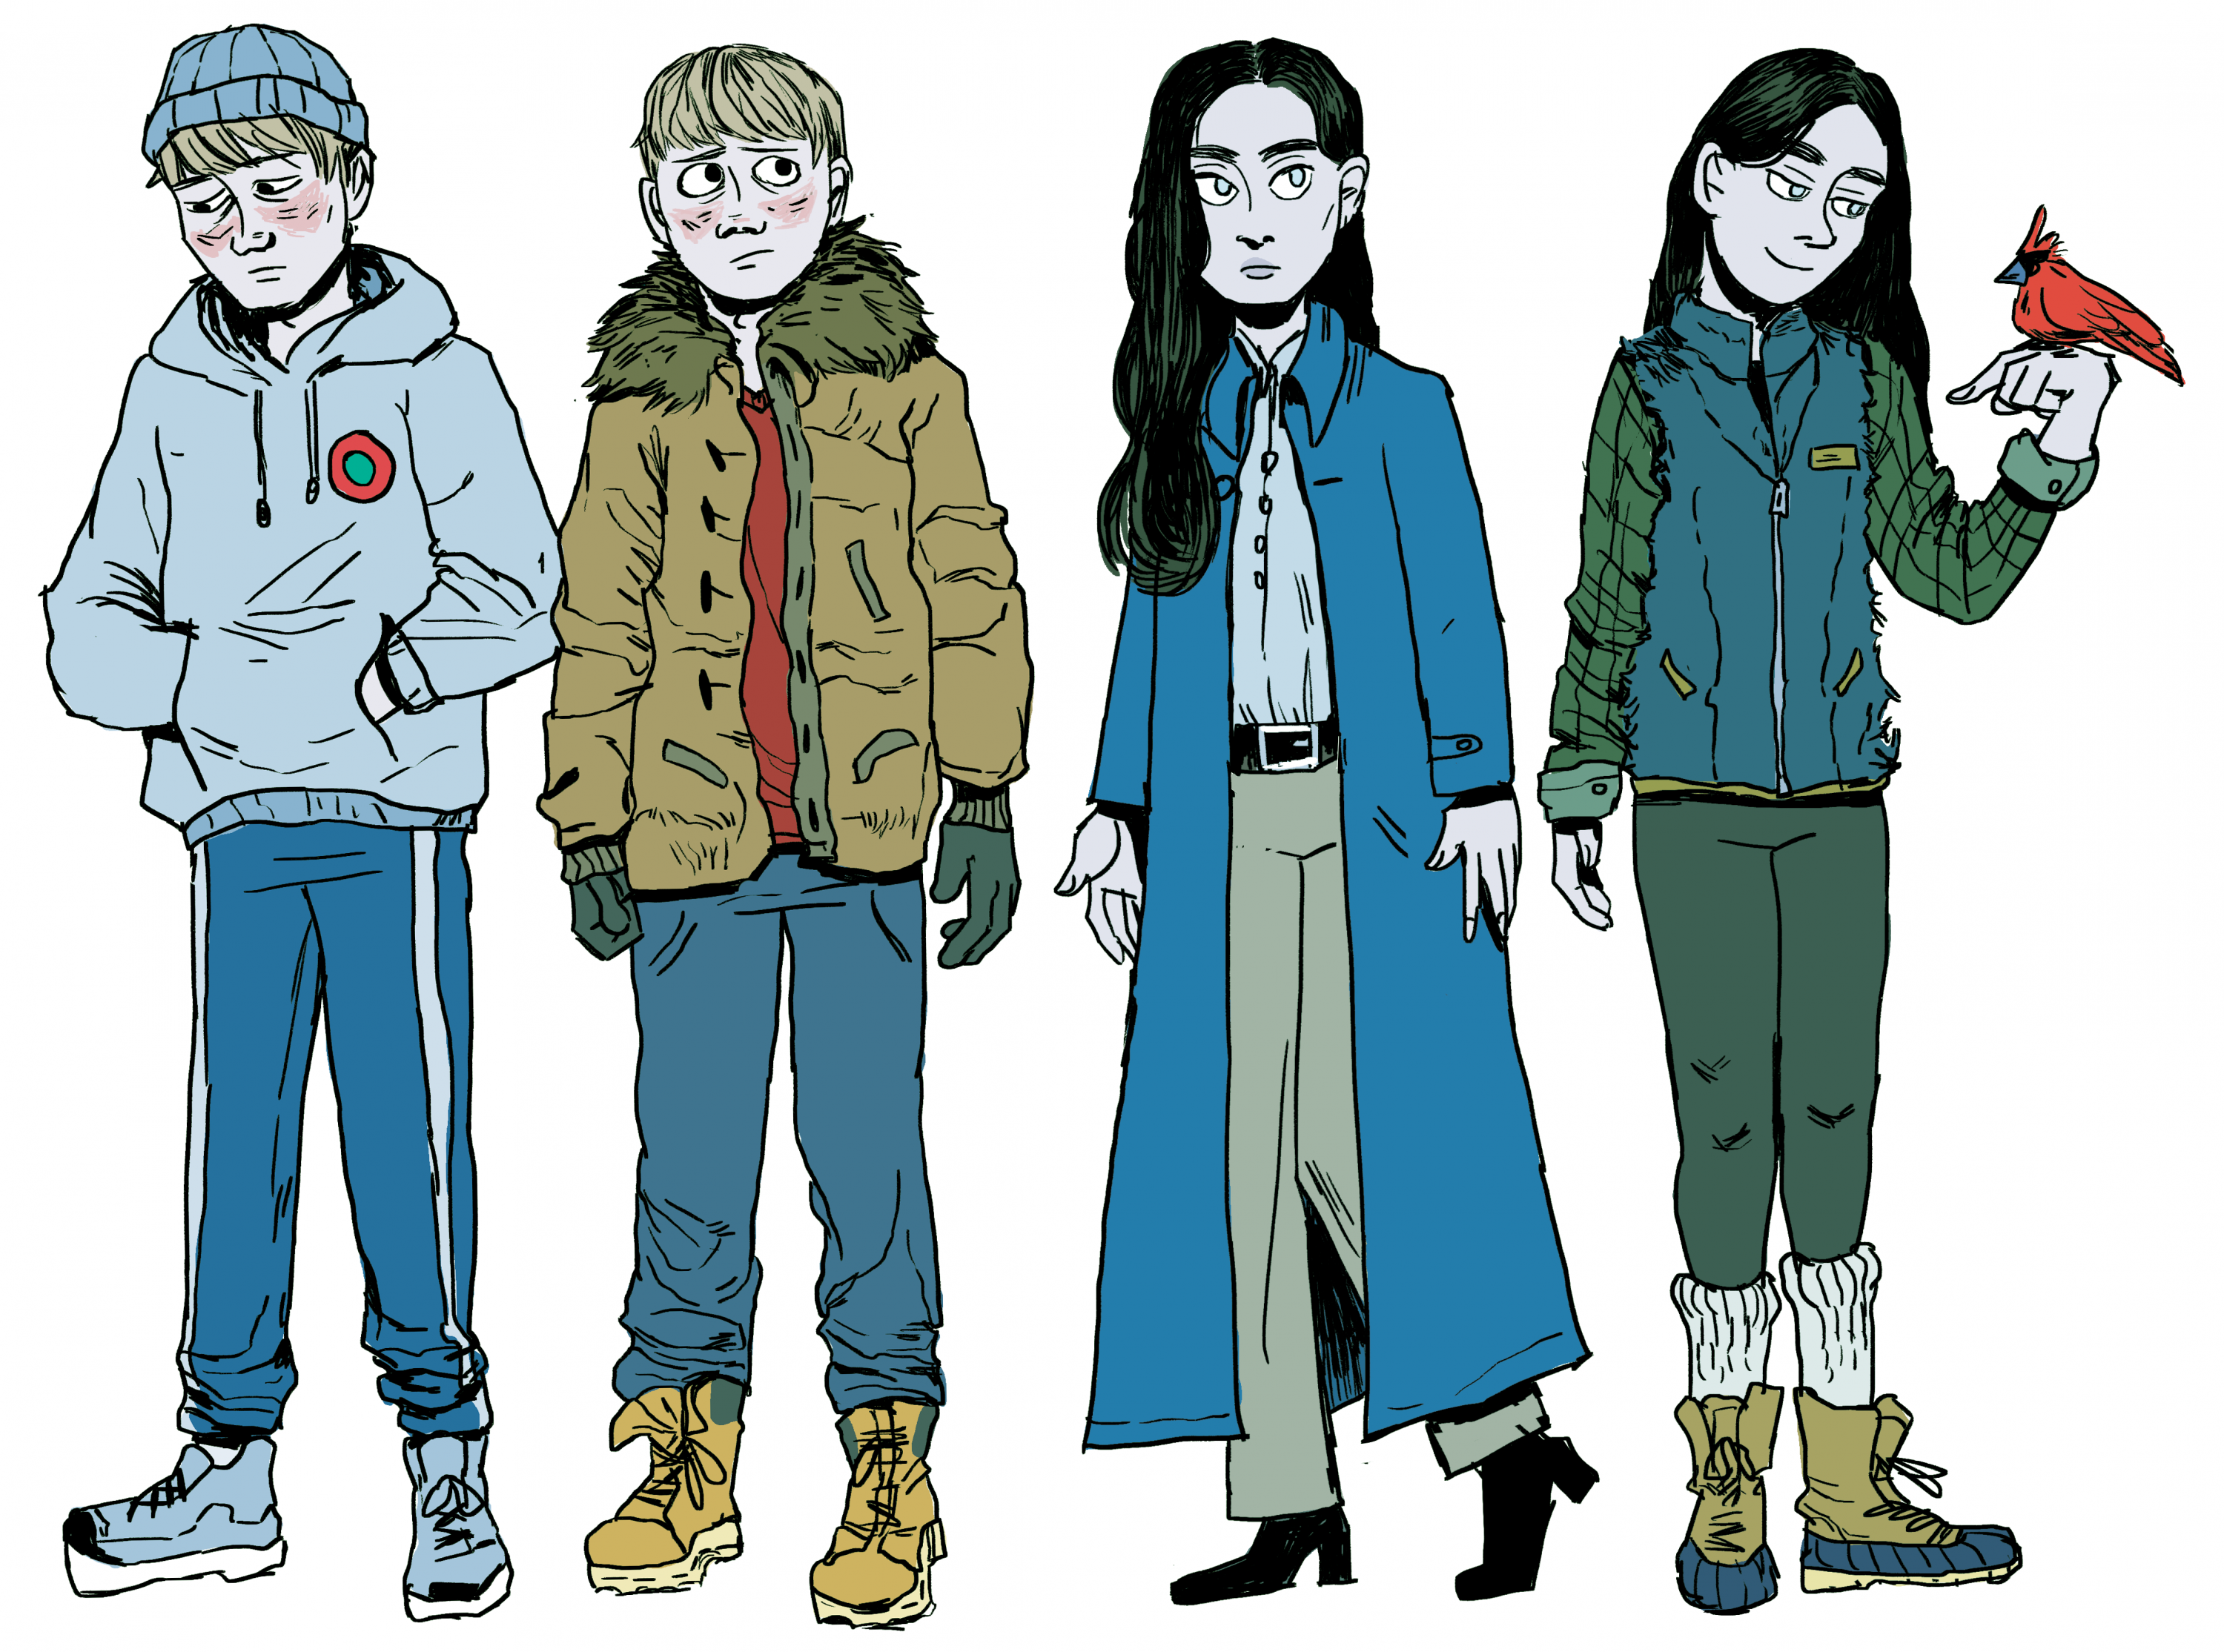 image 3: Kenny and Eva standing side by side in different outfits. Kenny's outfits: a grey hoodie and blue sweatpants with a grey hat, and a brown winter coat with brown fur trim and blue sweatpants with Timberland boots. Eva's outfits: A long blue coat w